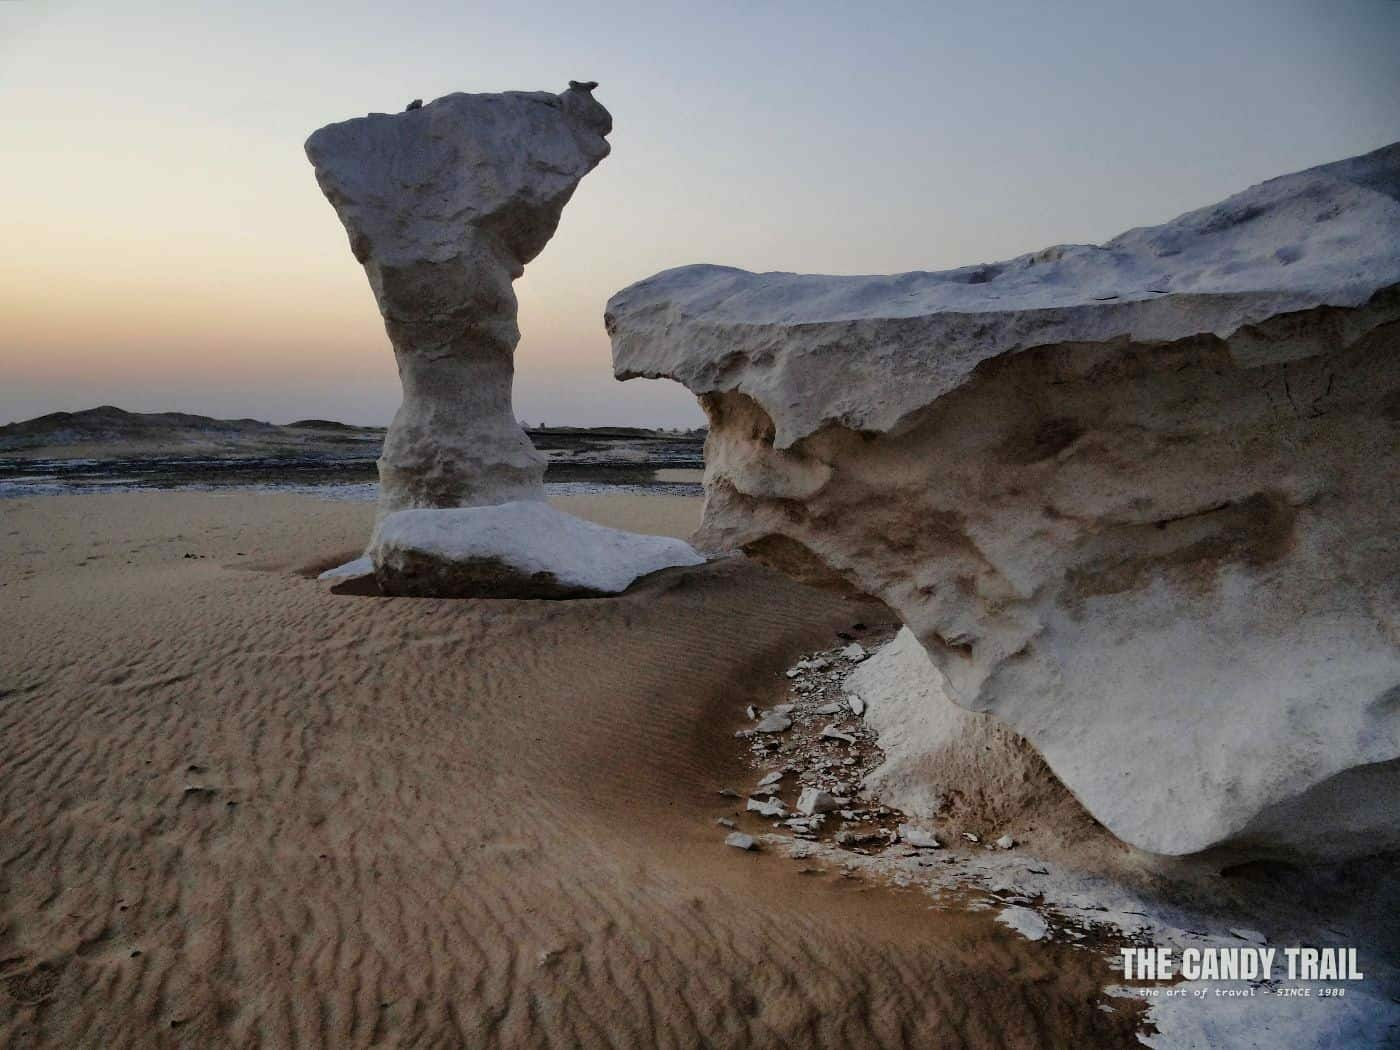 Dawn and awaiting the sunrise touring the white desert in egypt